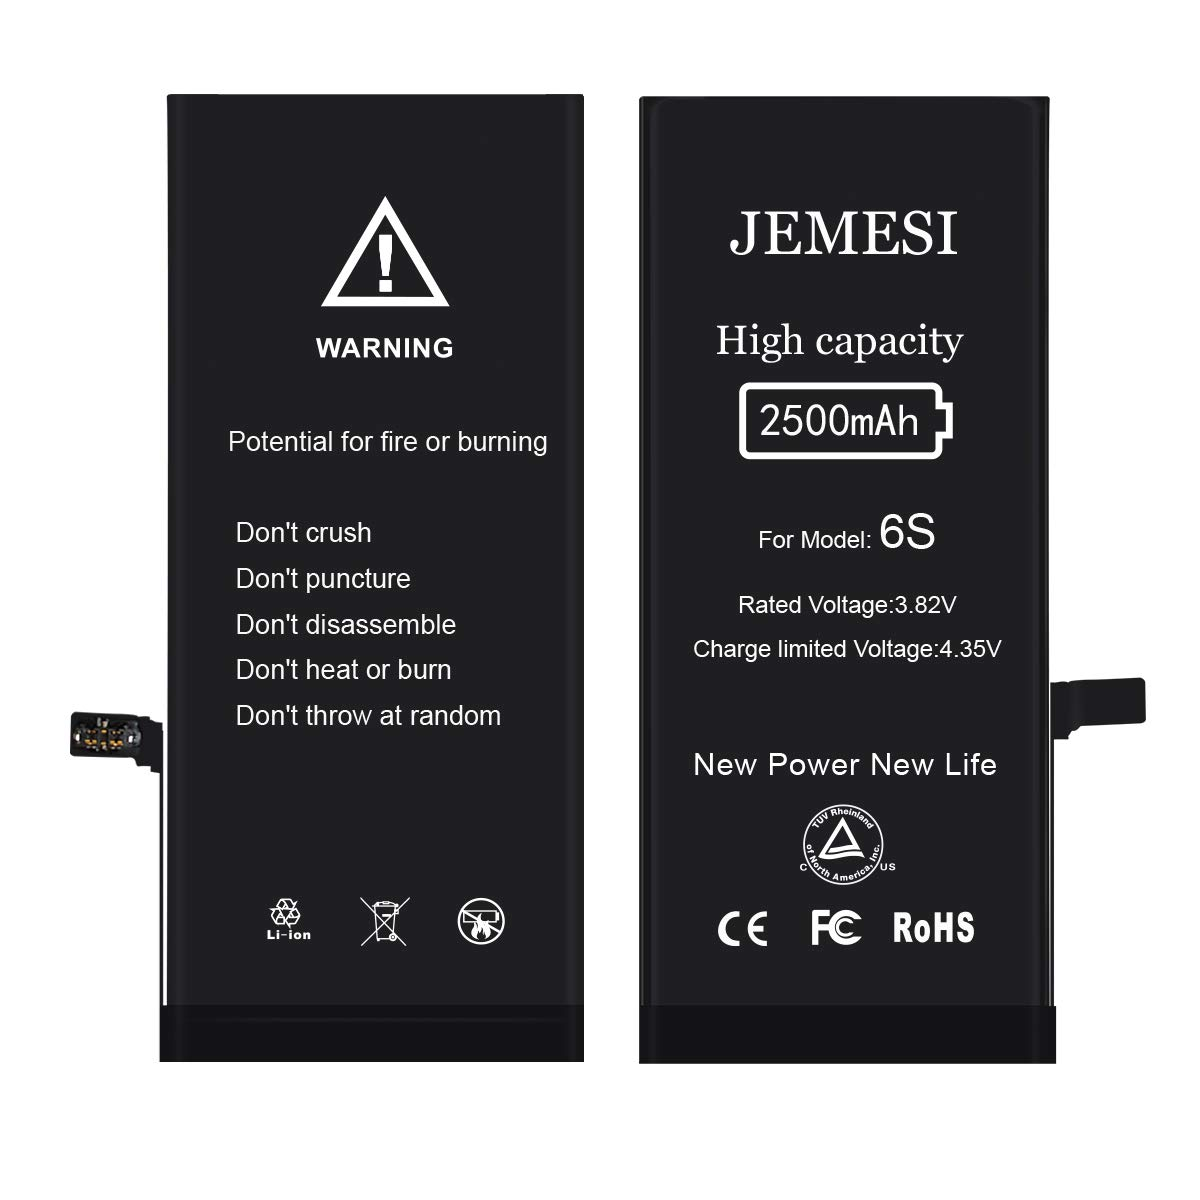 JEMESI High Capacity 2500mAh Replacement 6s Battery Compatible with A1633 A1688 with Replacement Kits 0 Cycle 2 Year Warranty